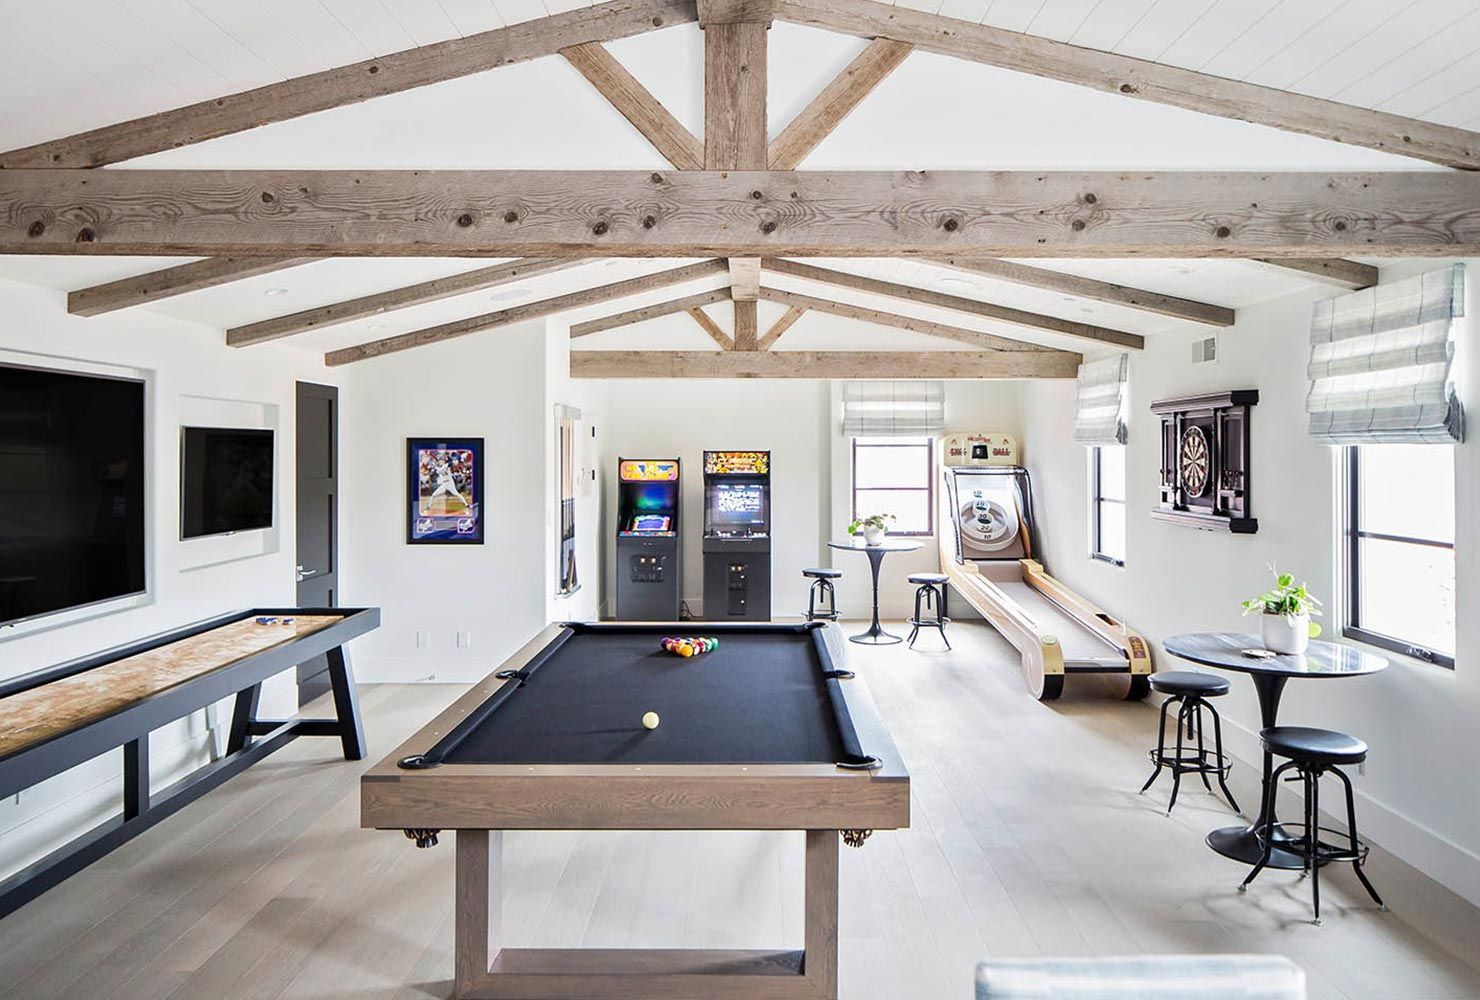 38 Best Game Room Ideas For Any Entertaining Shutterfly Game Room Idea Skee Ball Air Hockey Arca Garage Game Rooms Game Room Basement Farm House Living Room